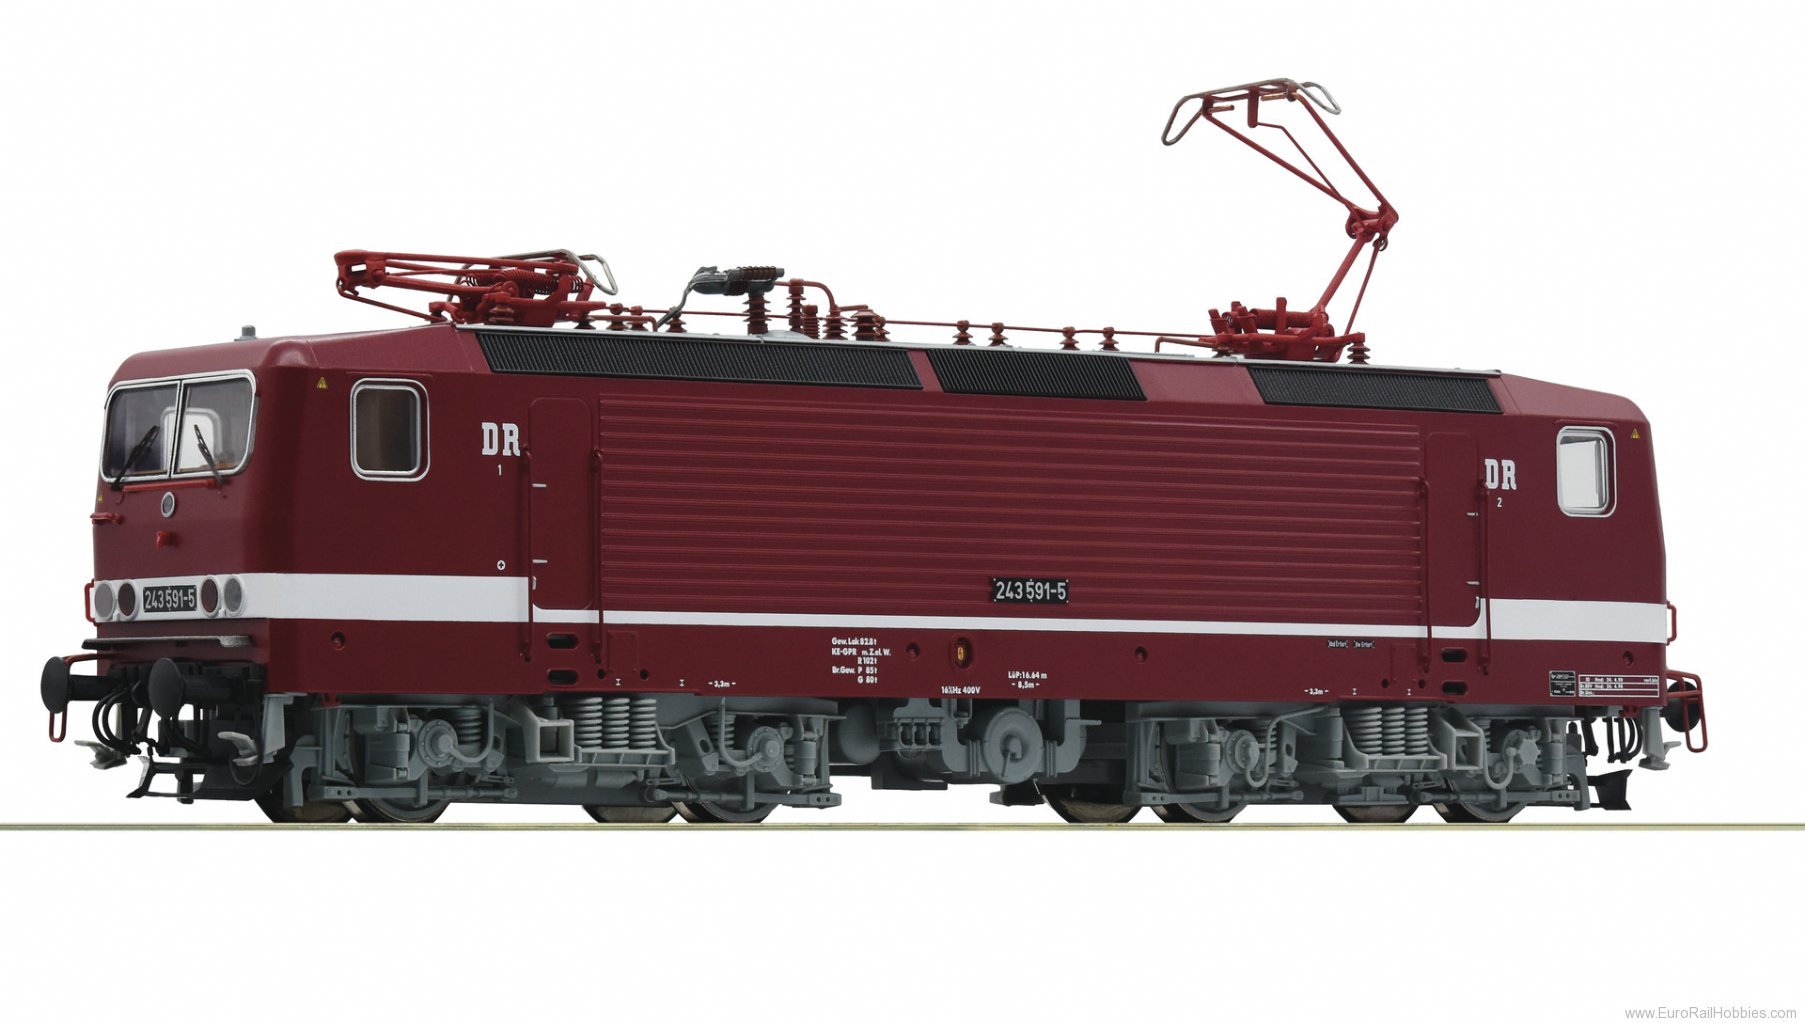 Roco 73063 DR 243 591-5 Electric Locomotive DCC w/Sound